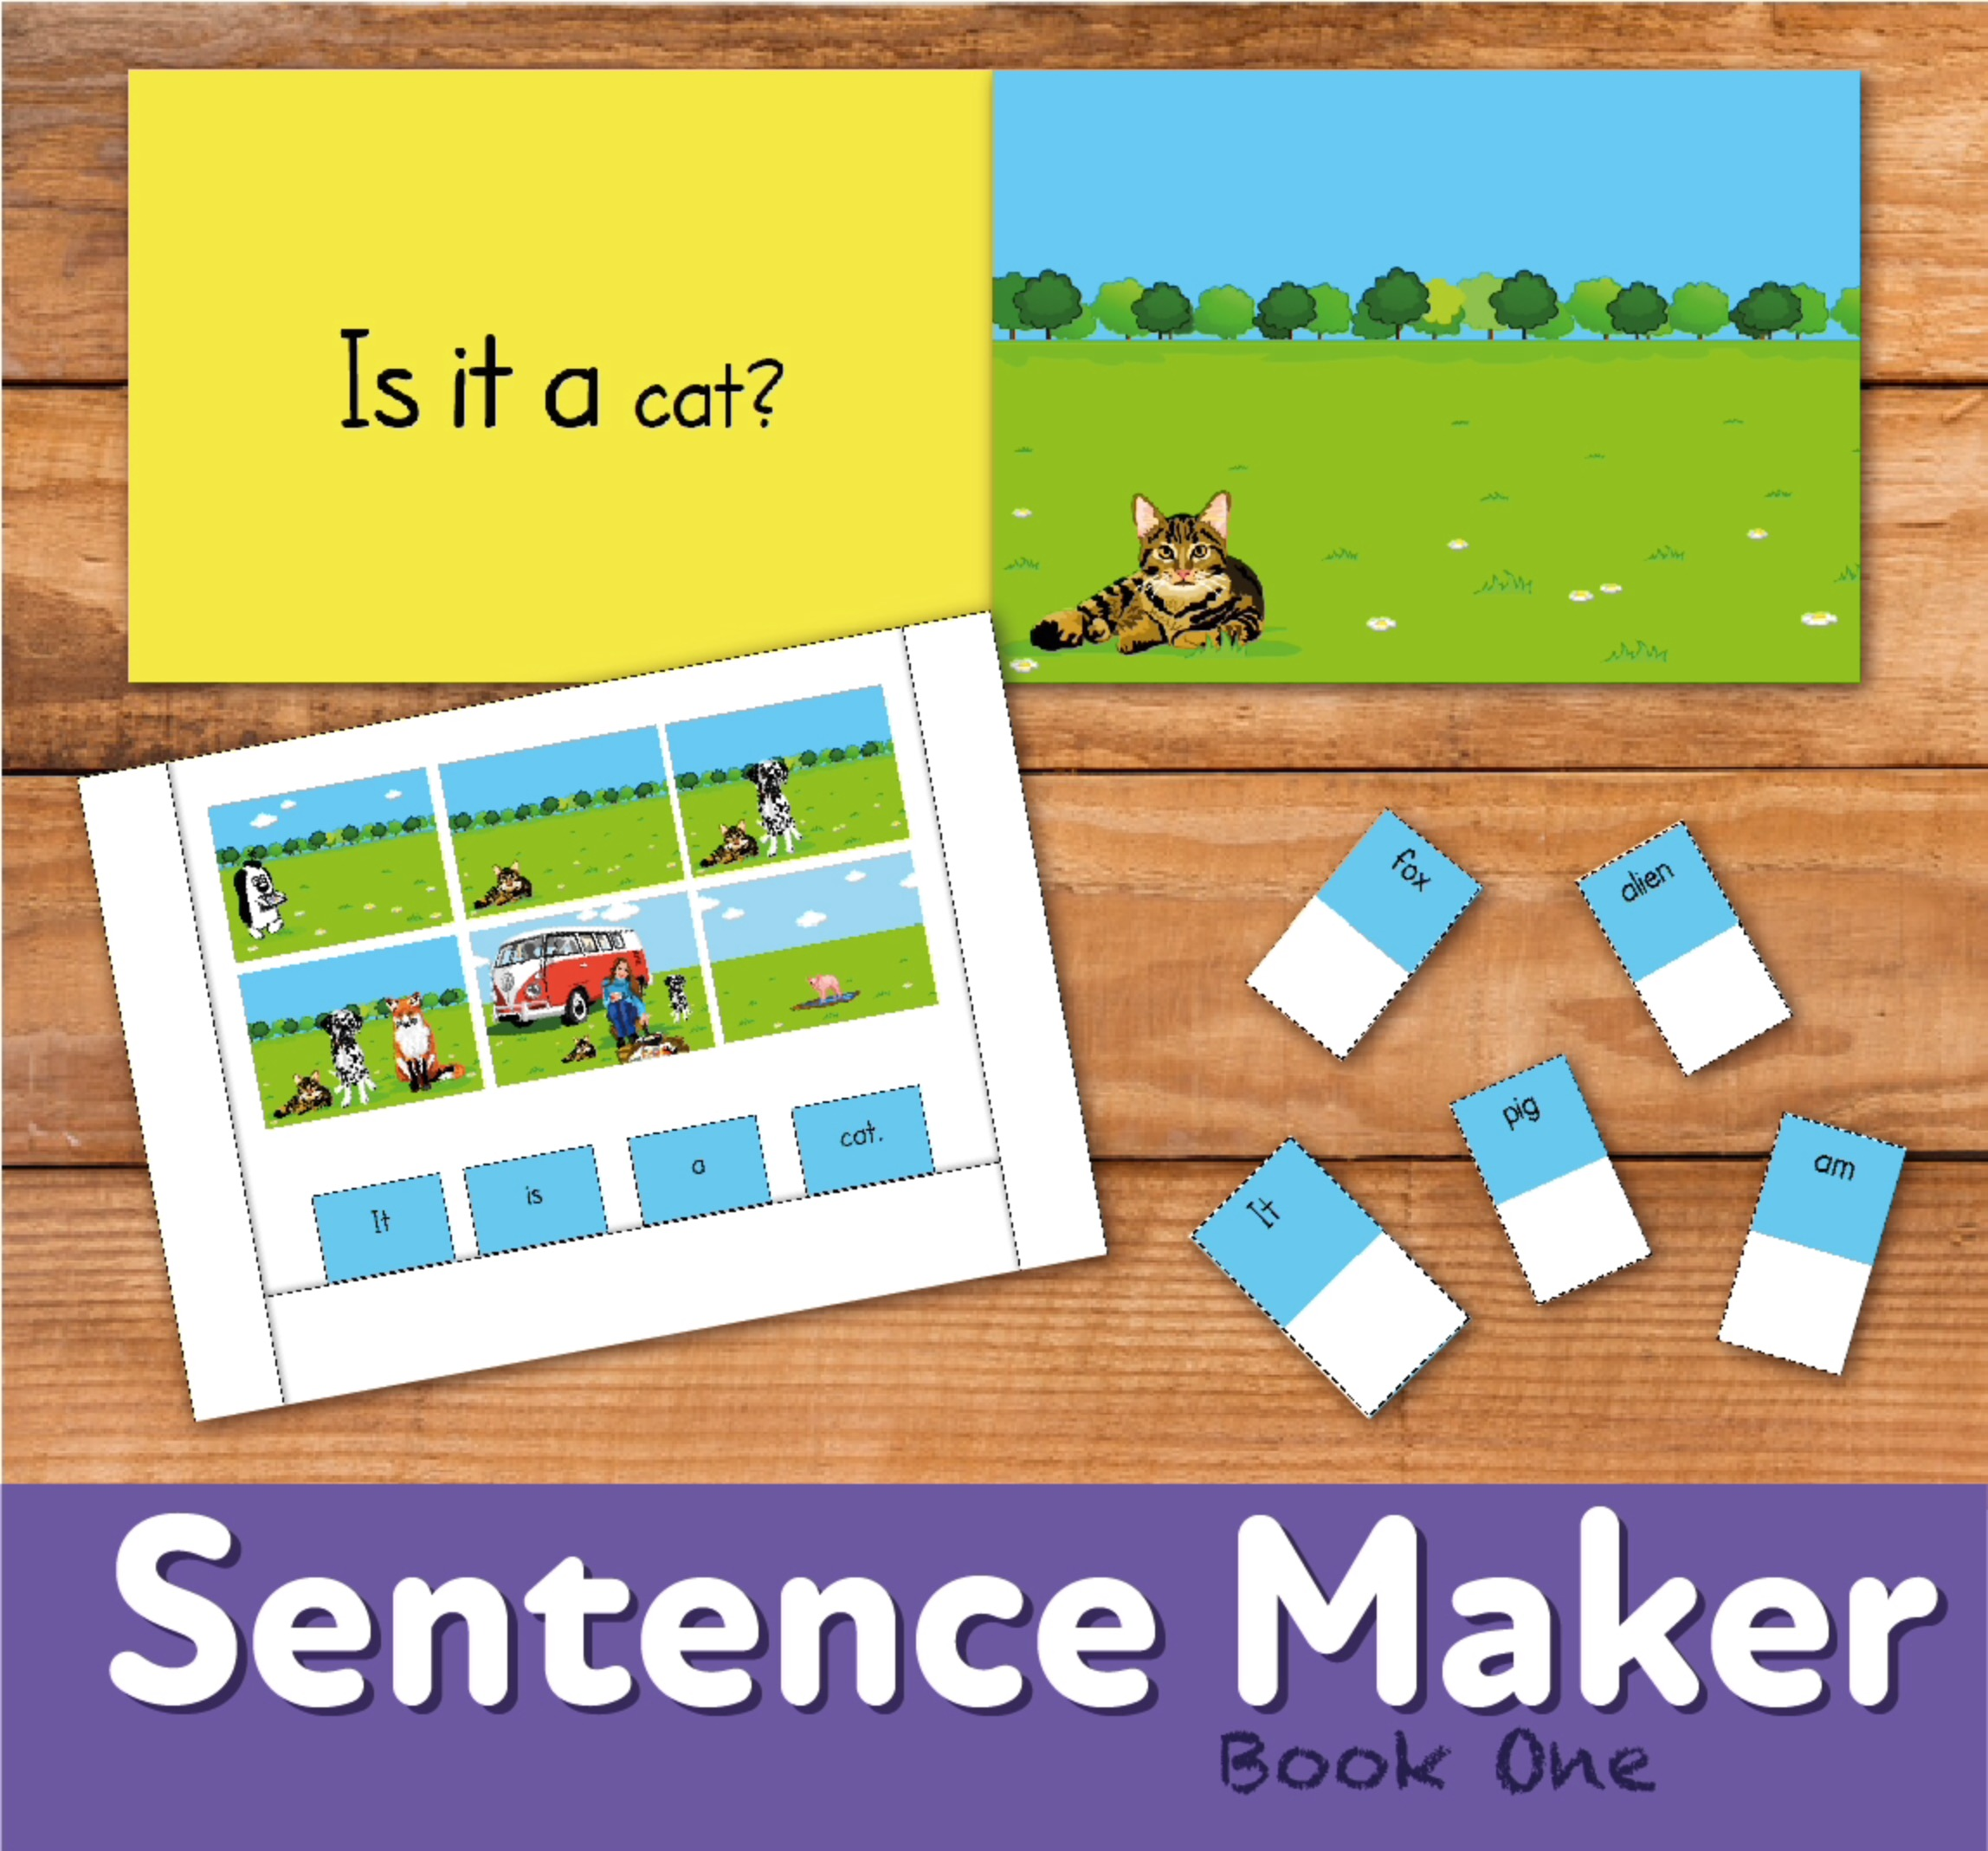 Make Sentences With The Sentence Maker: Book 1